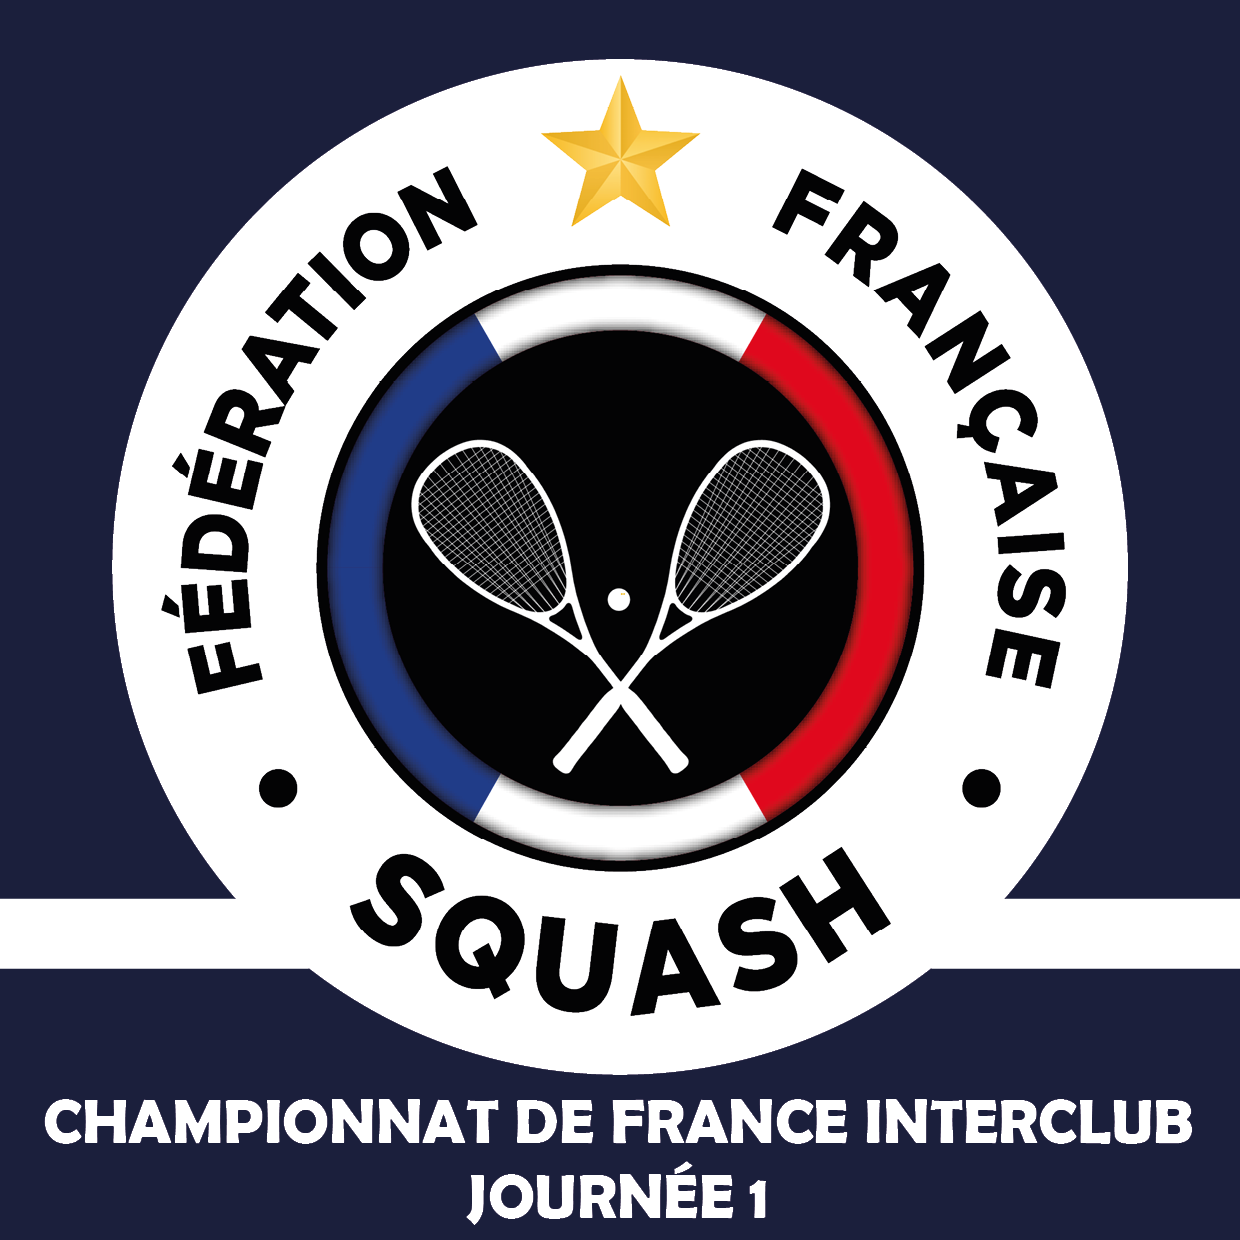 CHAMPIONNAT DE FRANCE INTERCLUBS : DES LEADERS INATTENDUS